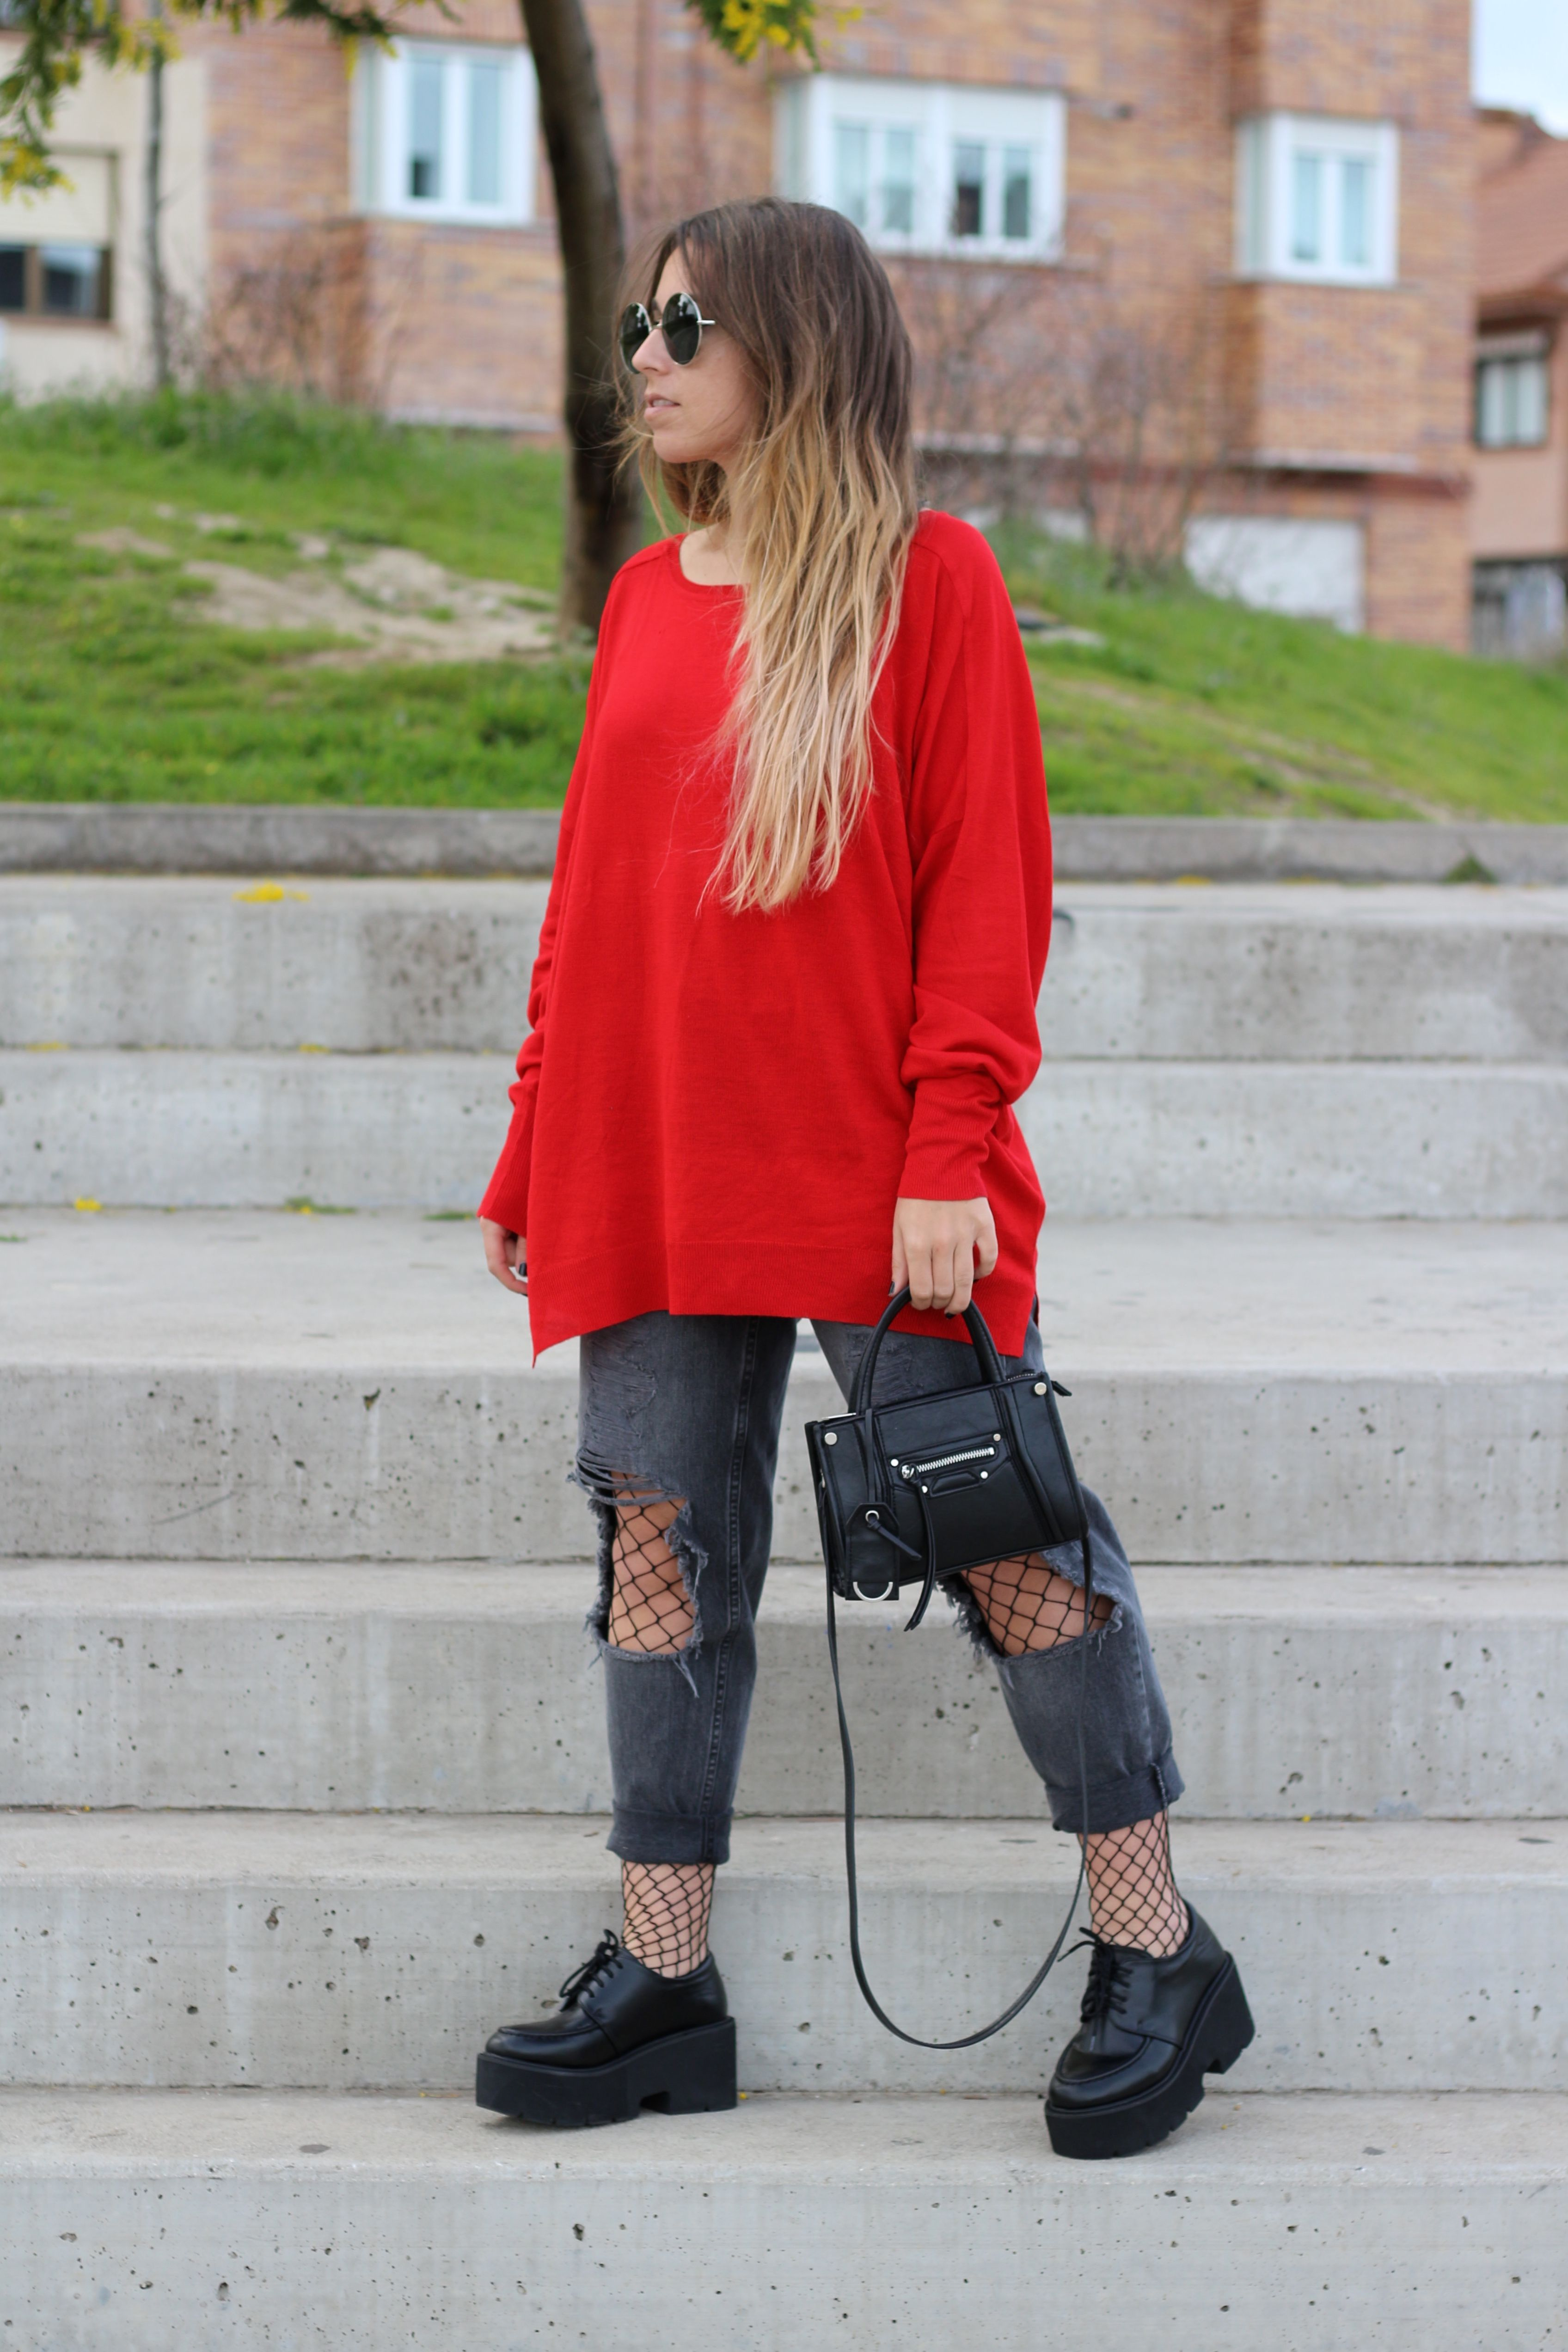 Ripped jeans with fishnet tights. Red sweater. Trendencies